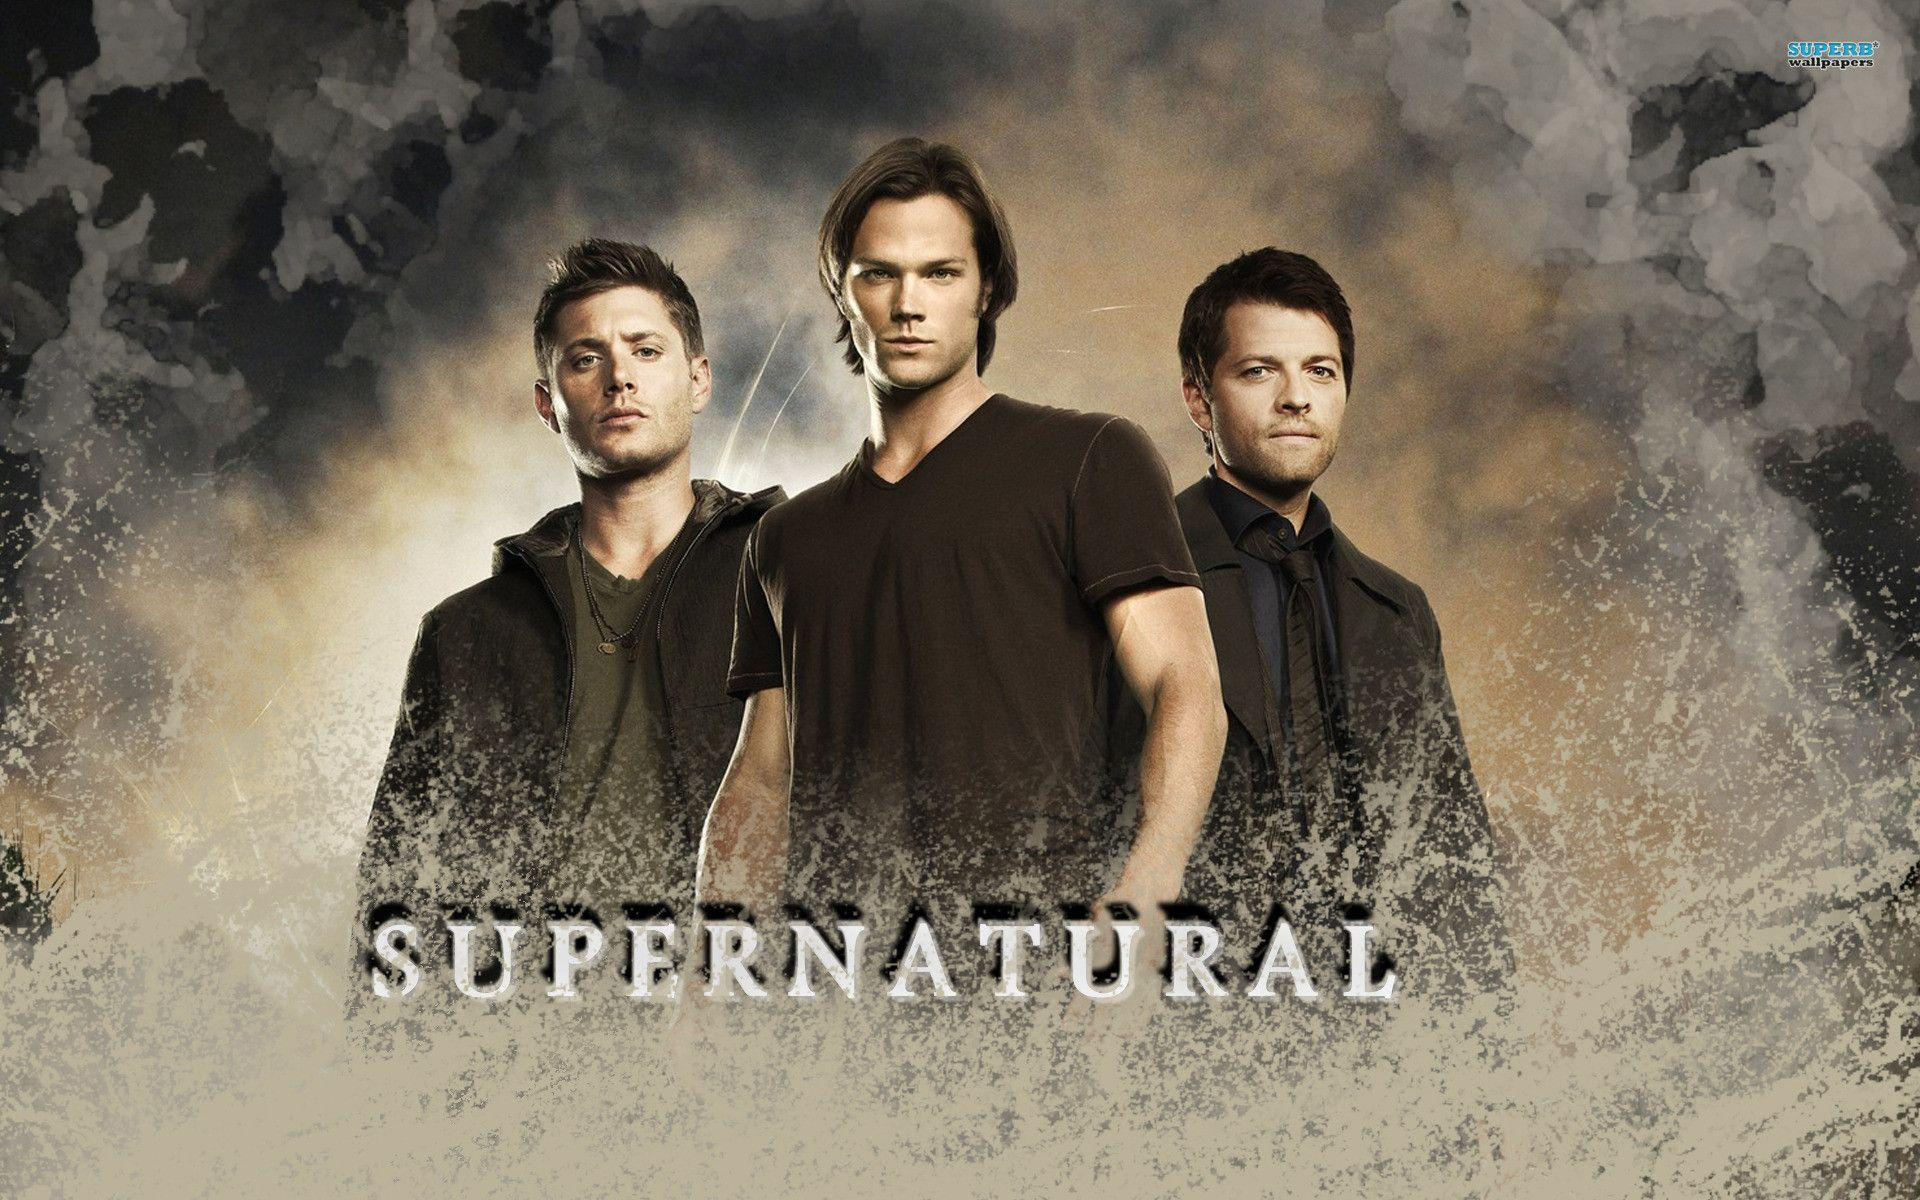 Movie Supernatural Wallpapers HD Free